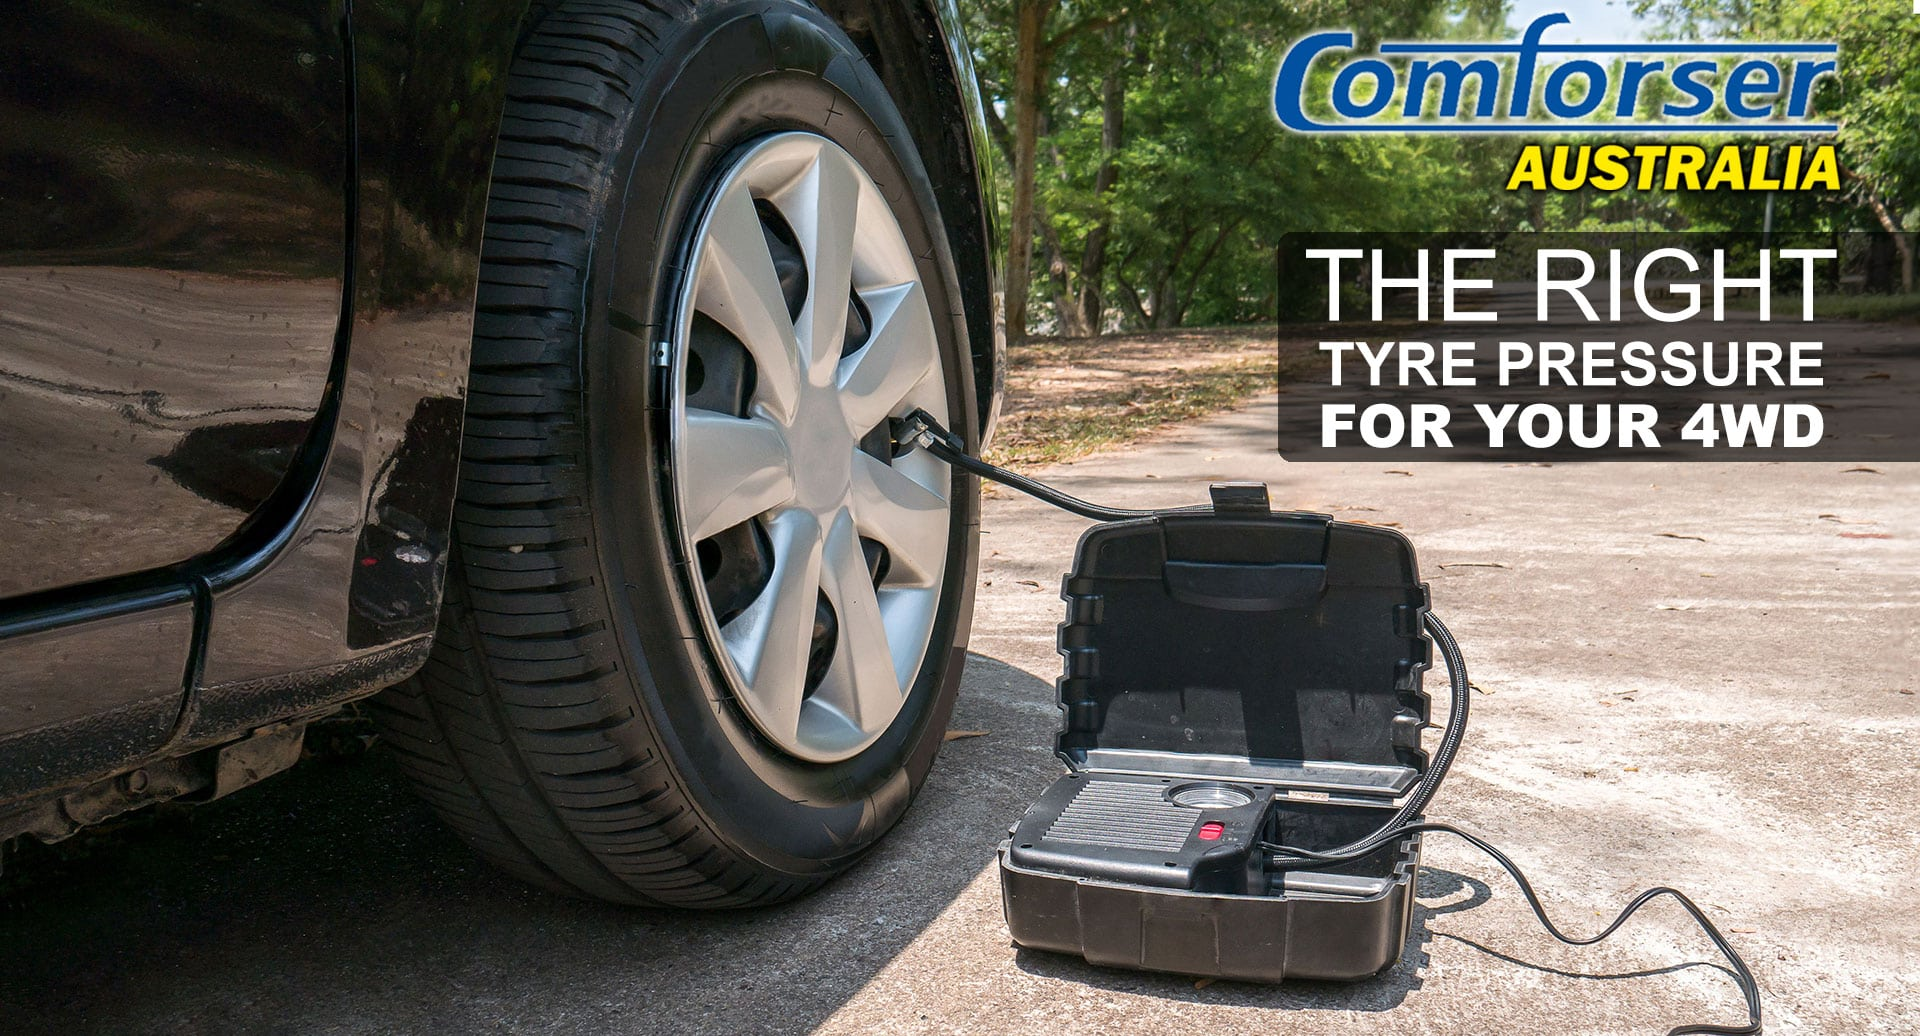 The Right Tyre Pressure For Your 4WD